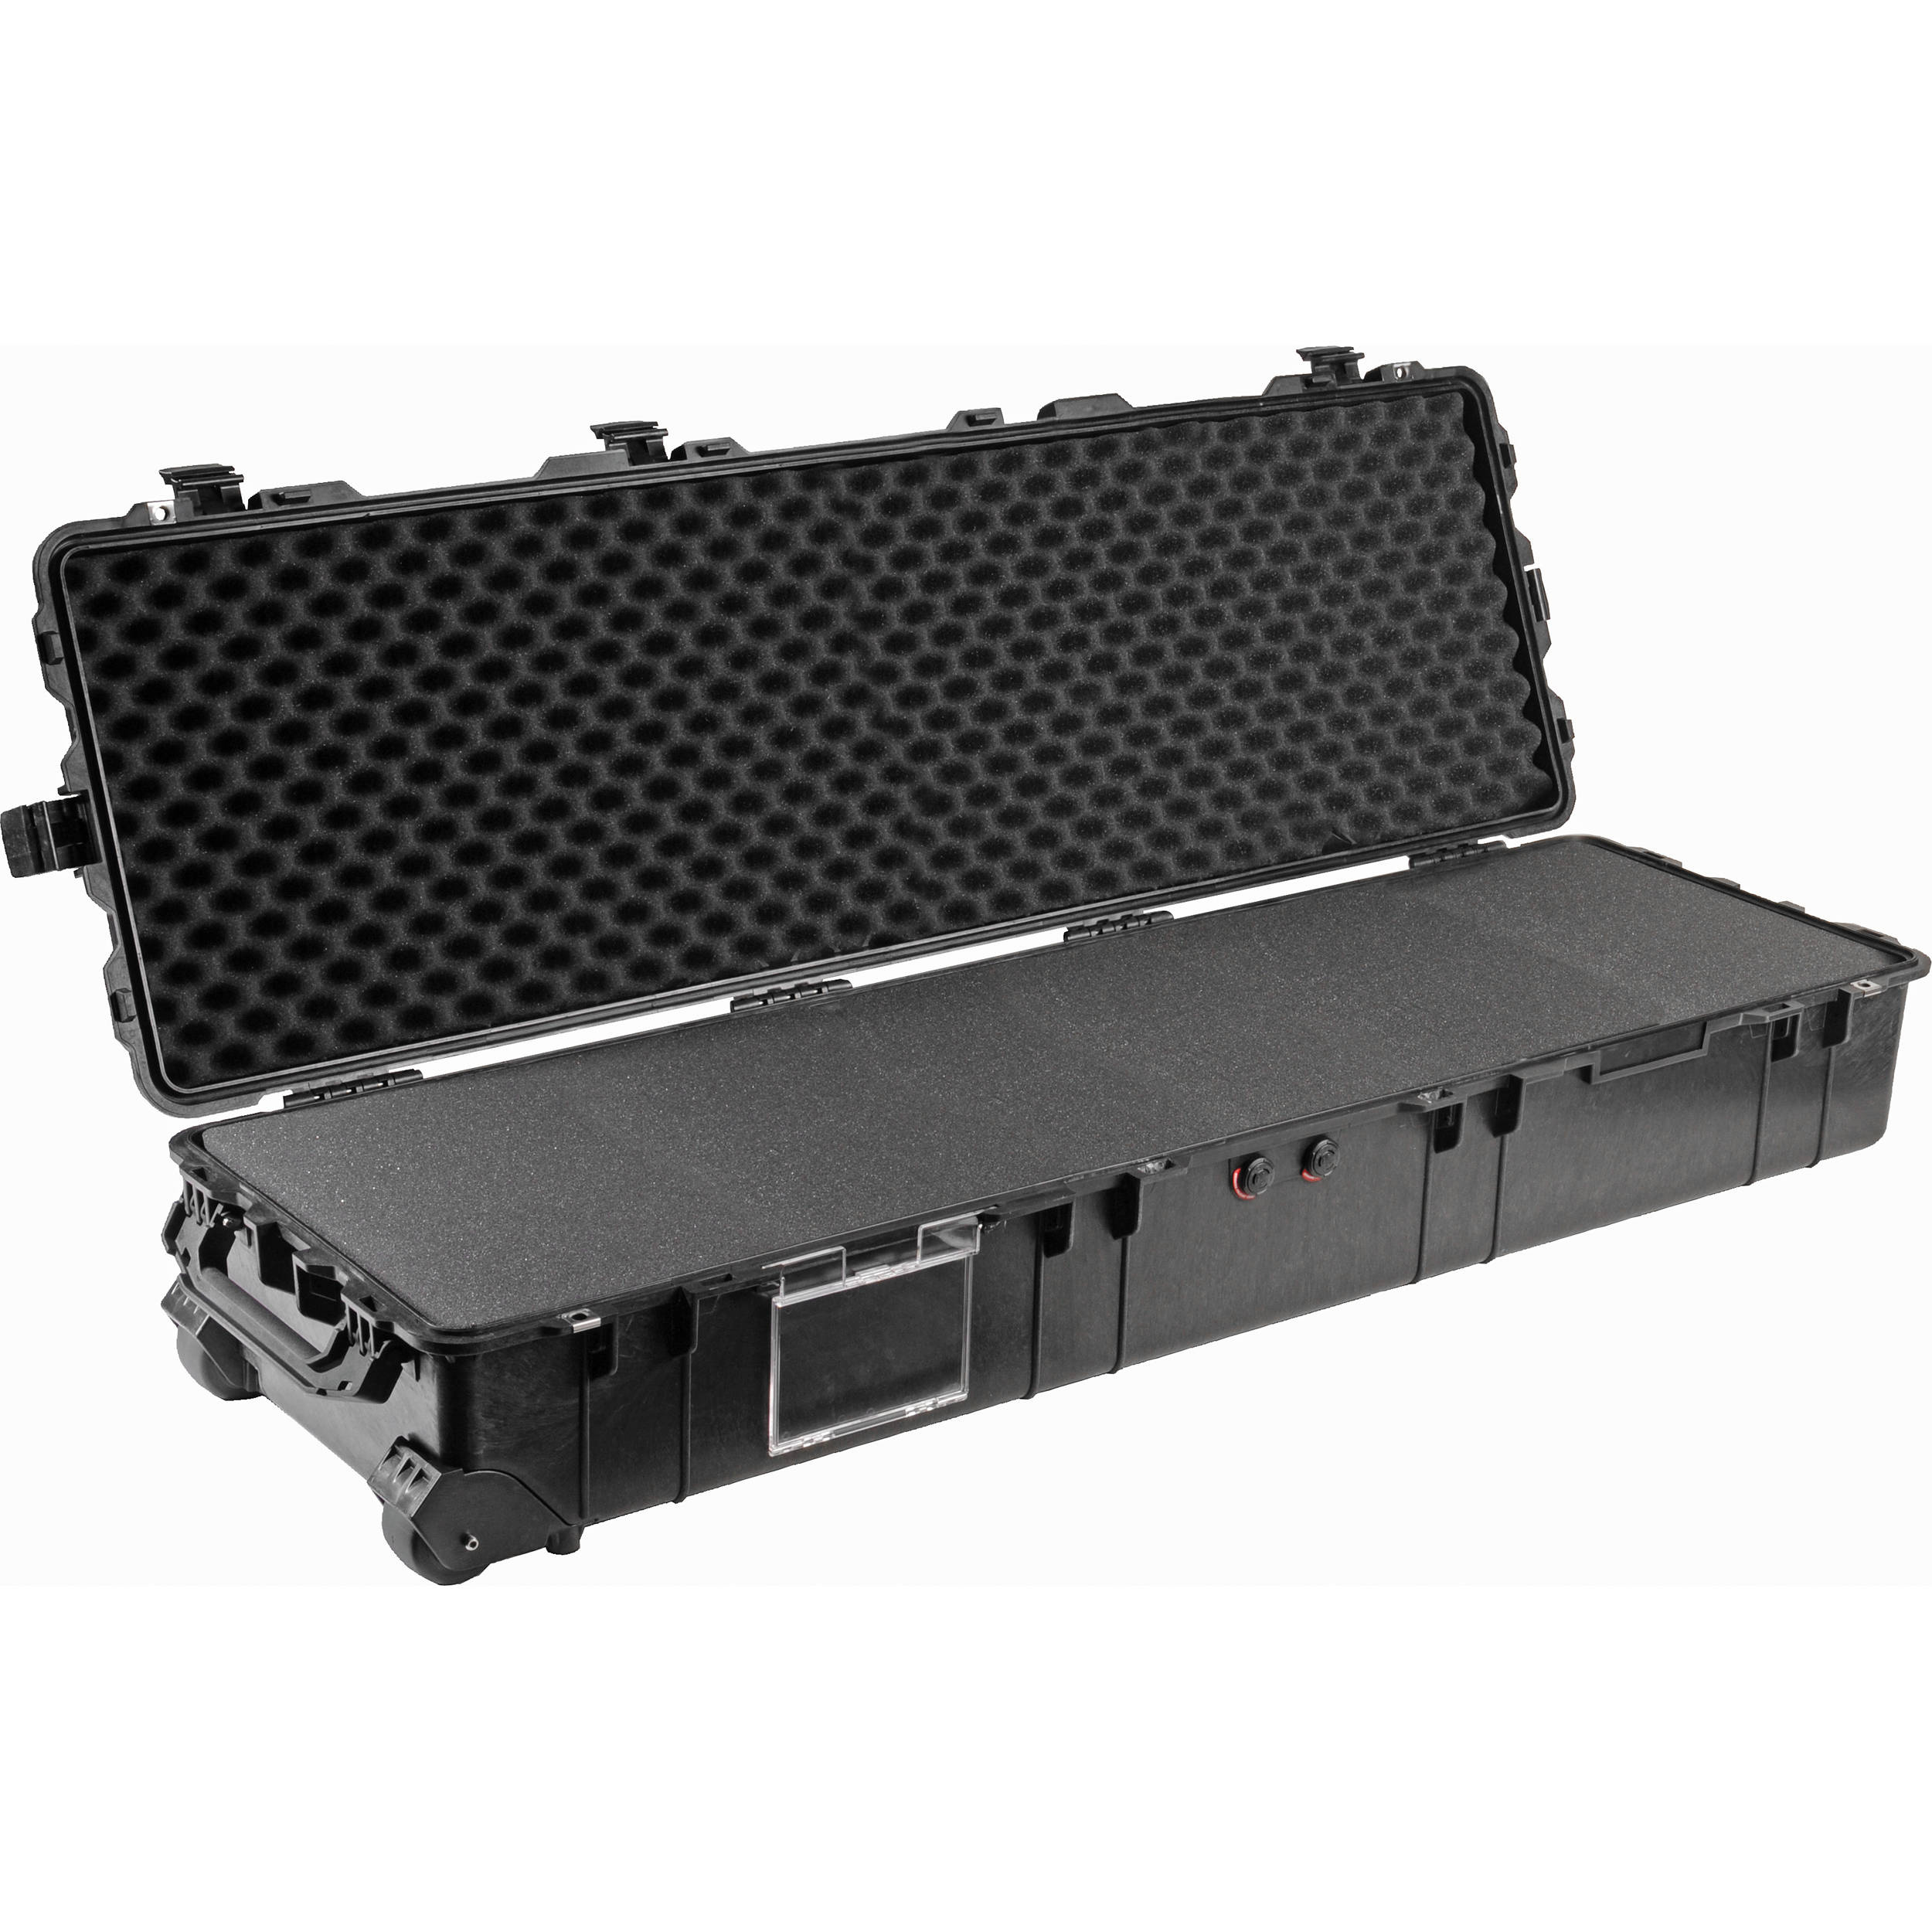 Pelican 1770 Long Case (Black)